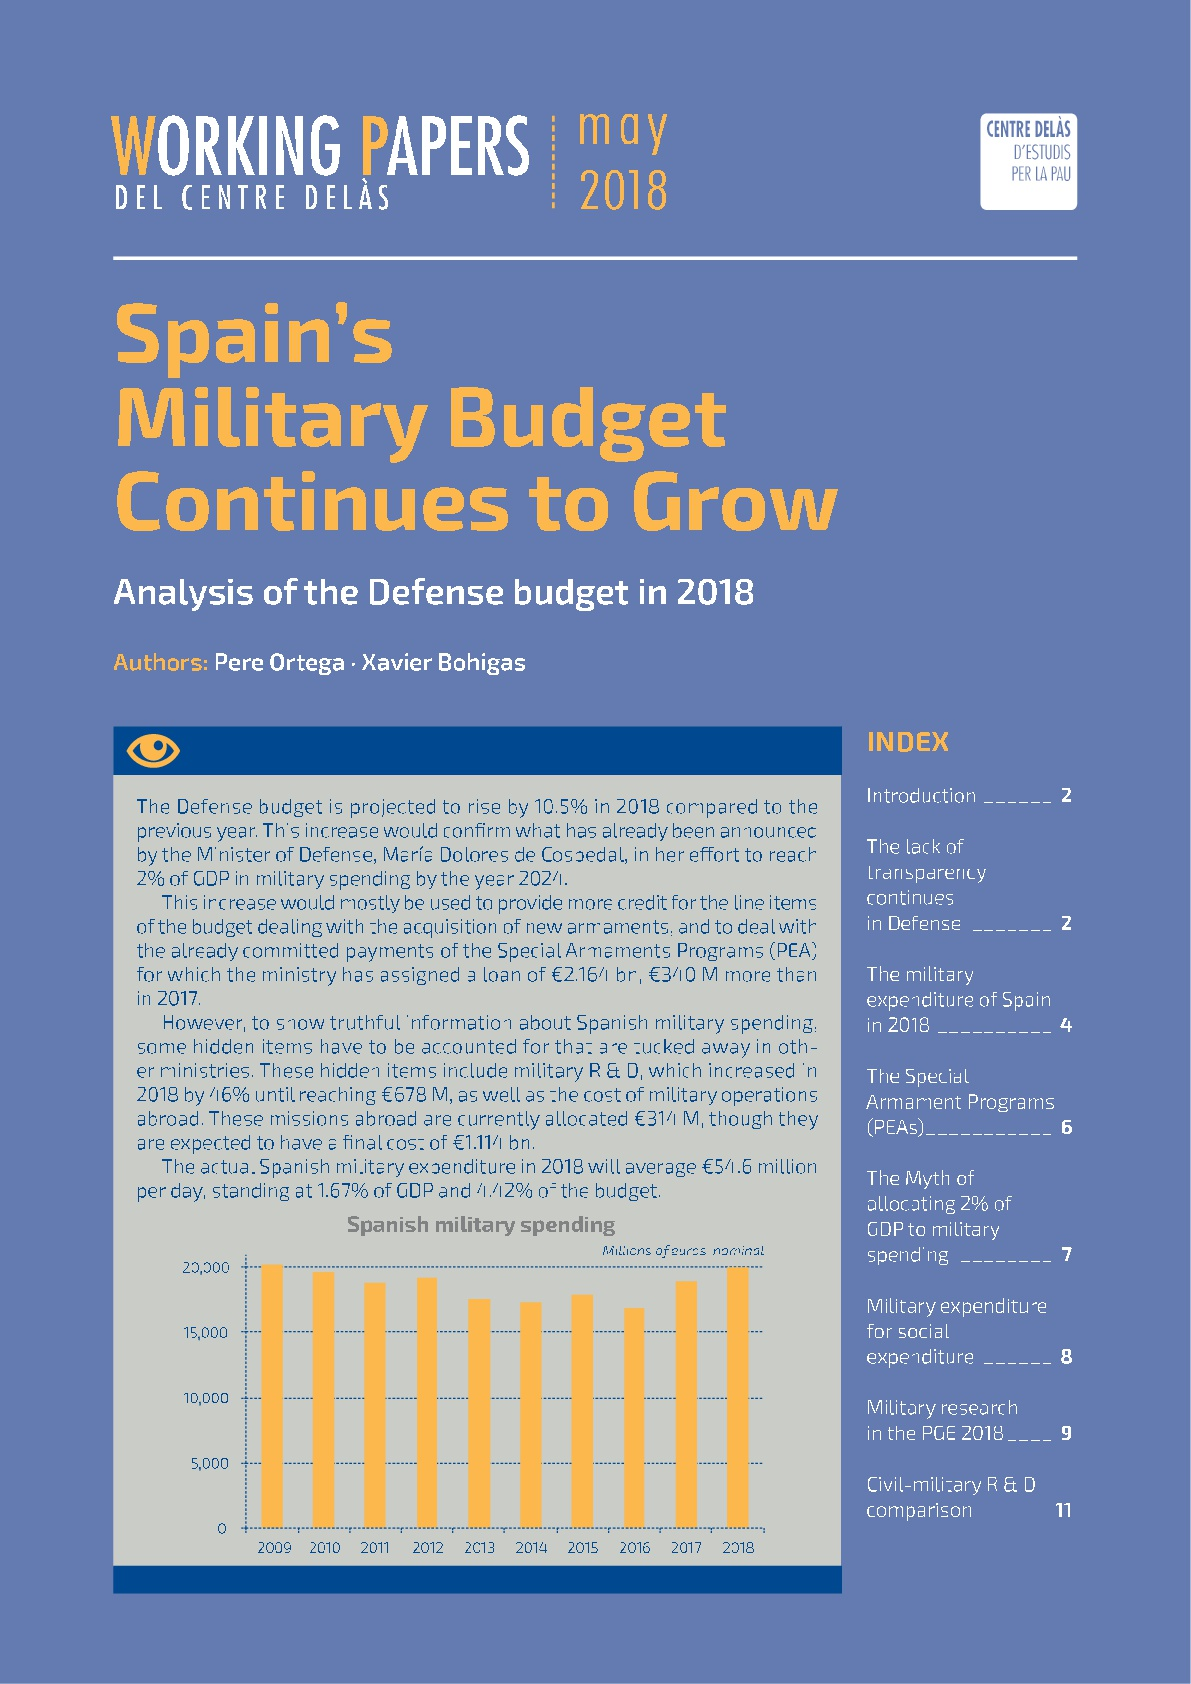 Working Paper: The military budget of Spain continues to grow